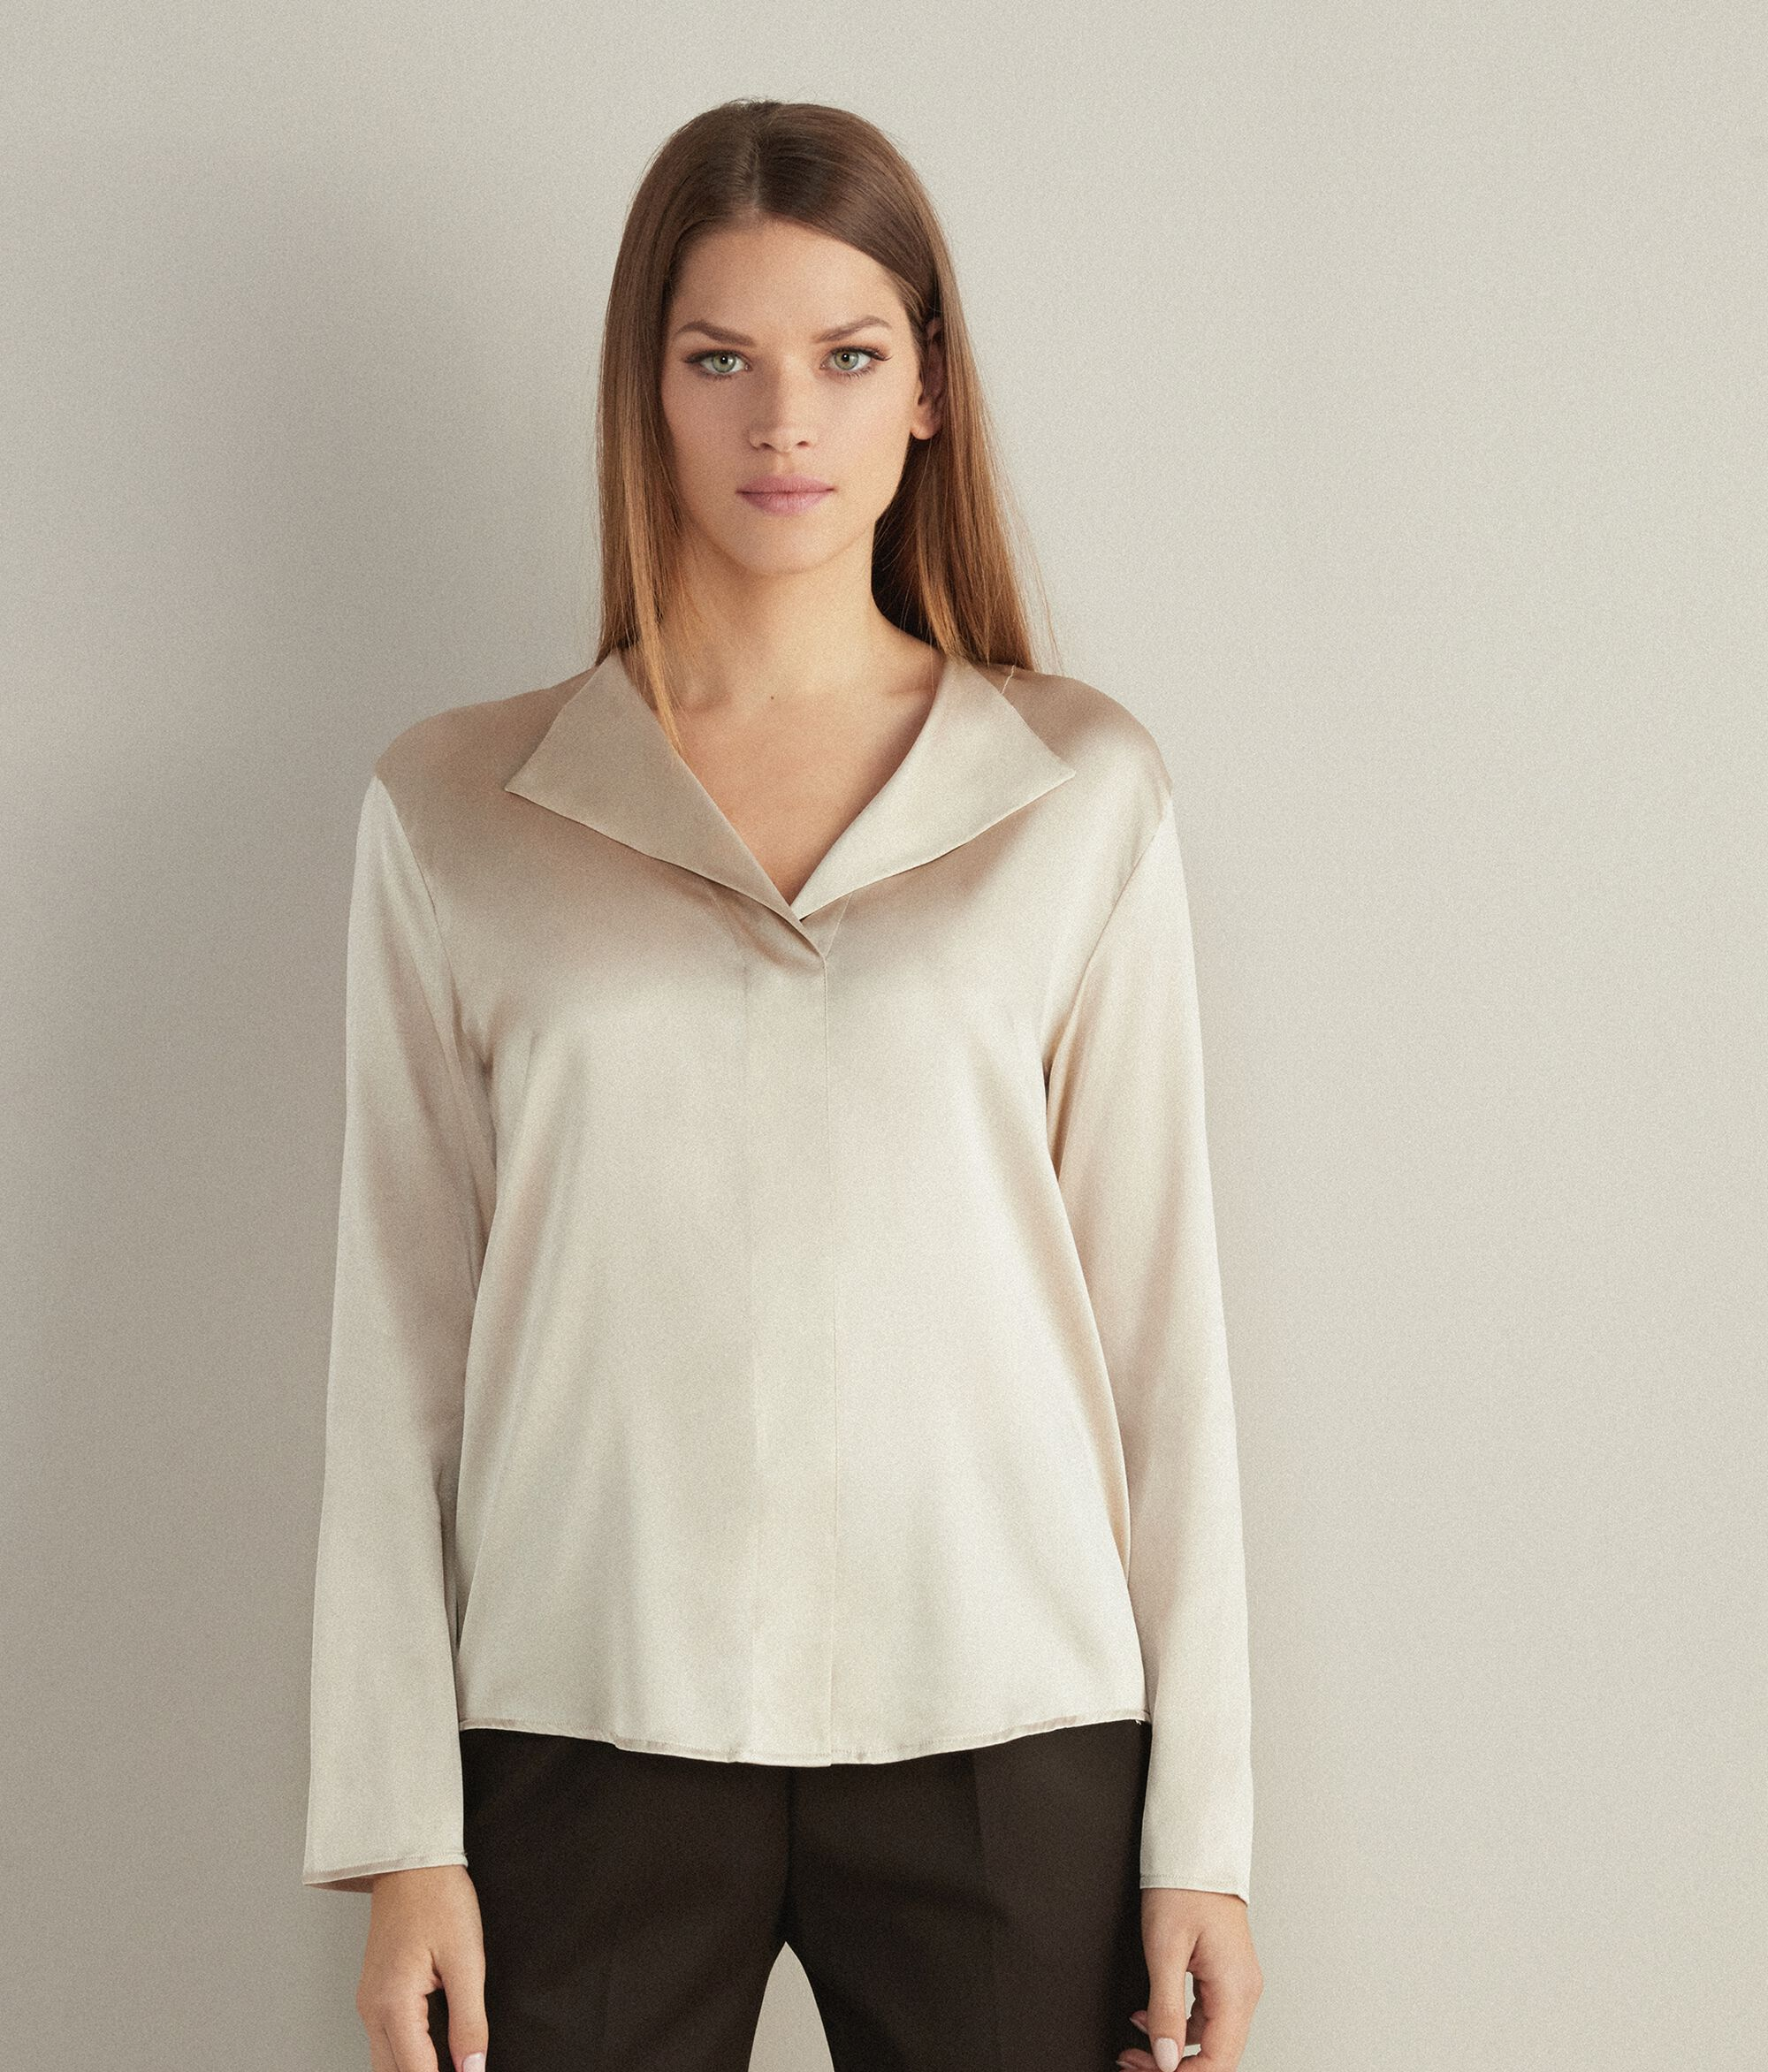 Blusa Scollo V in Seta